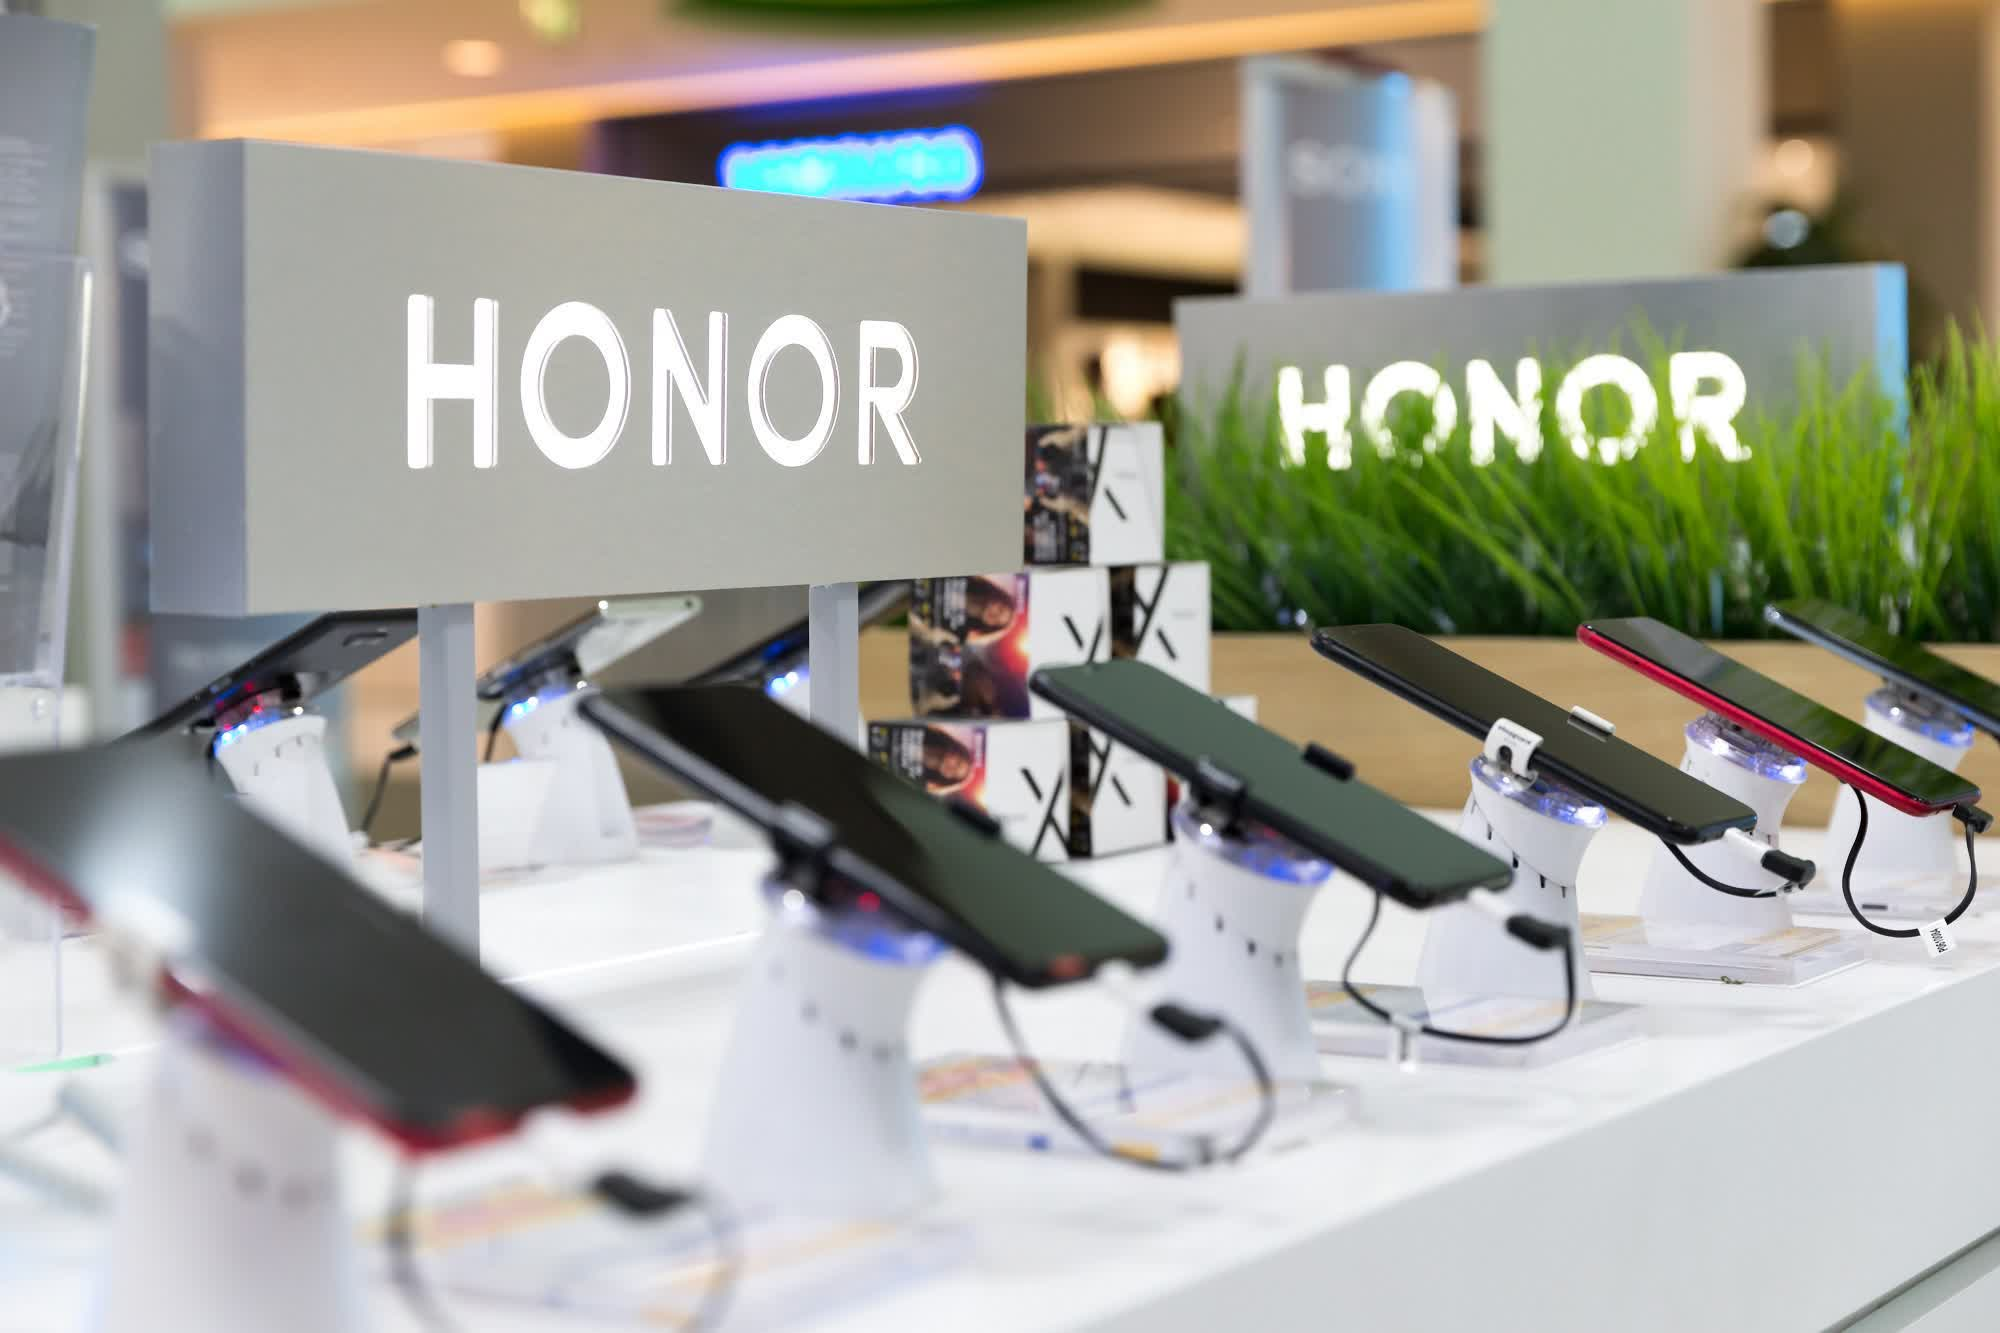 Report: Huawei is selling its Honor unit for over $15 billion